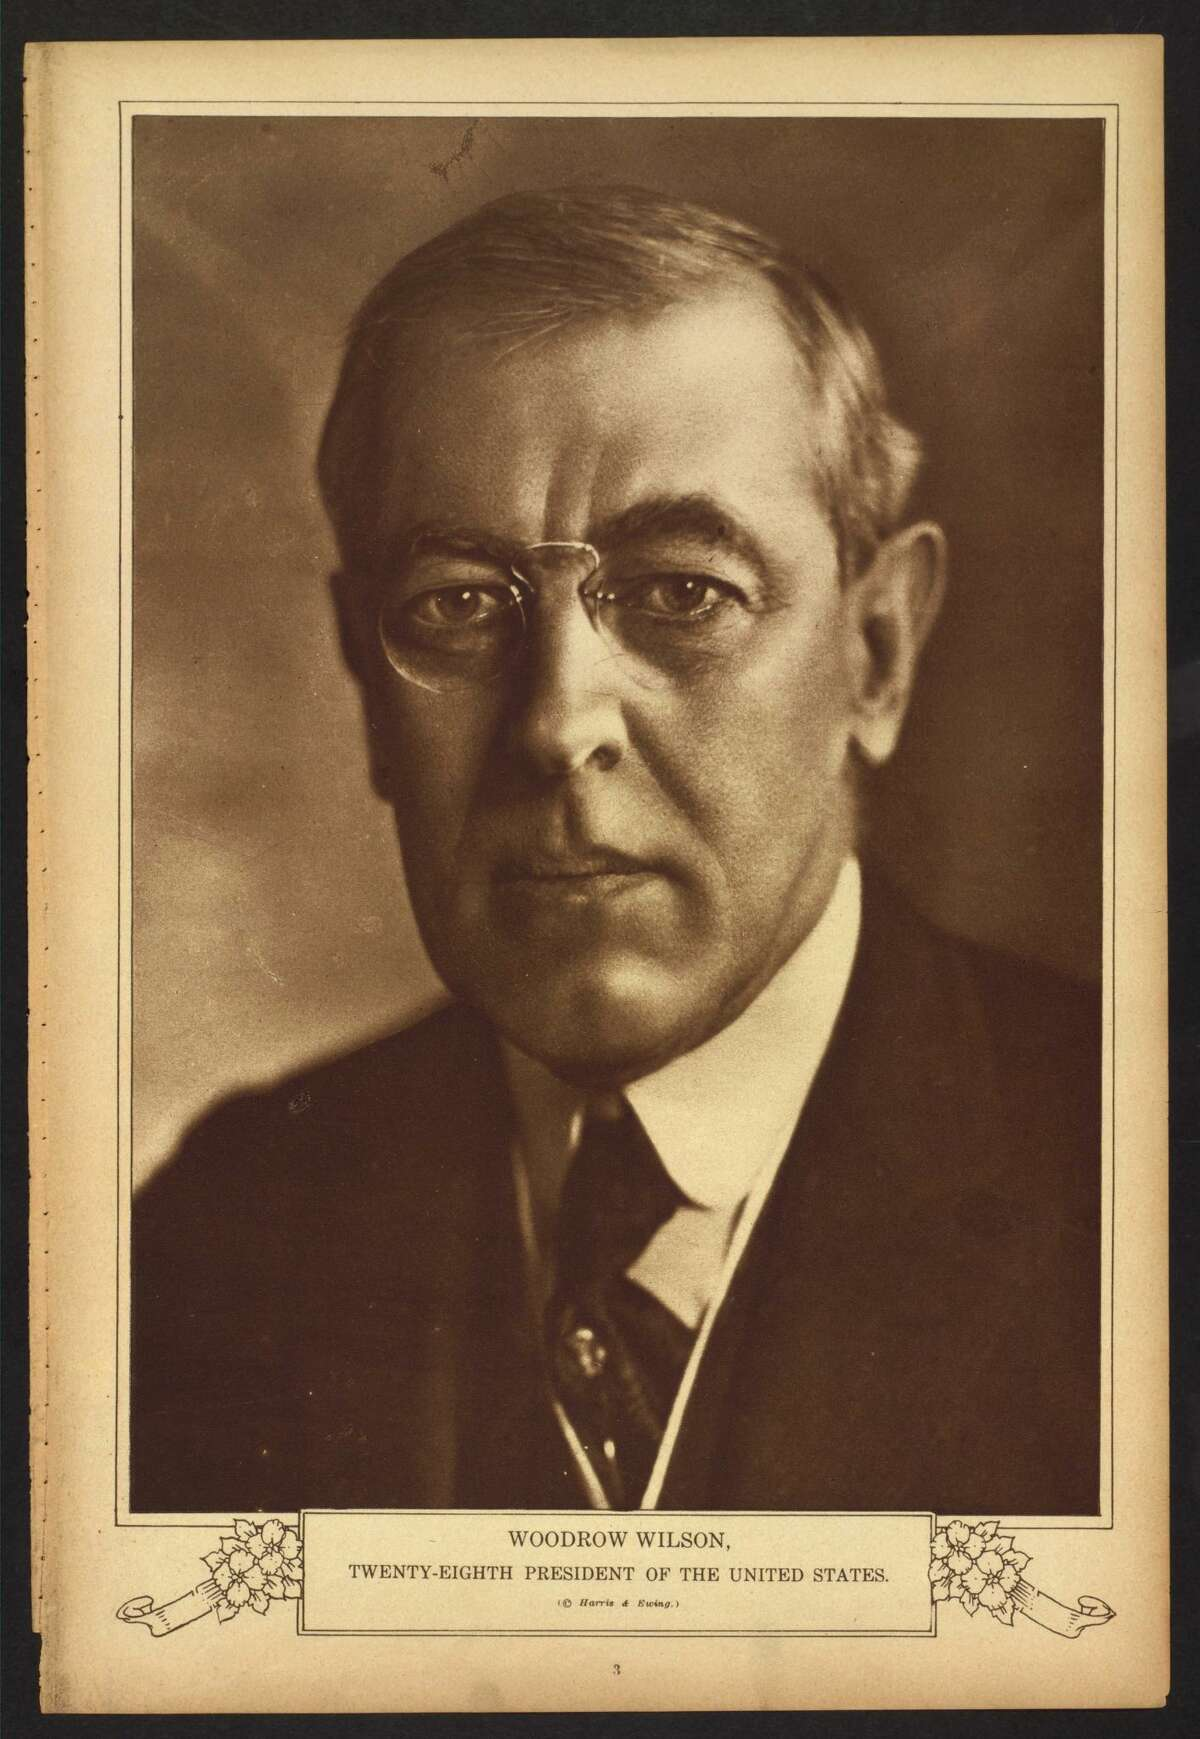 Woodrow Wilson, President of the United States, 1913-1921. Library of Congress notes: